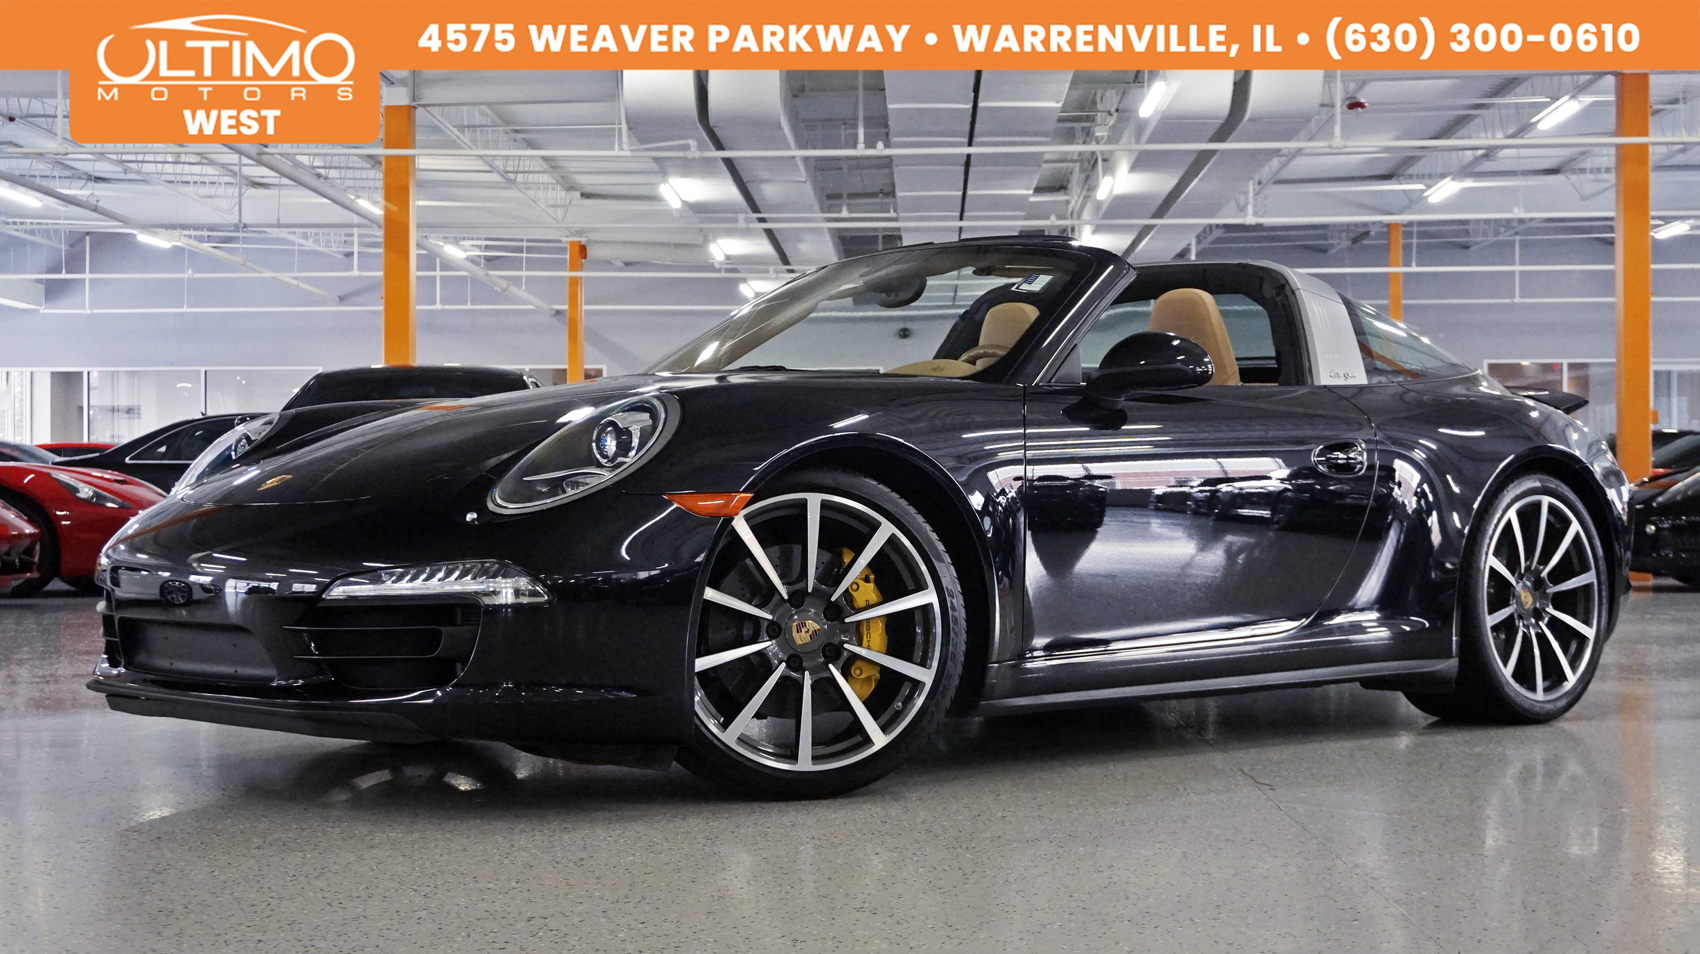 Pre-Owned 2015 Porsche 911 4S, Targa Top, PCCB, PDLS, Msrp $145,340